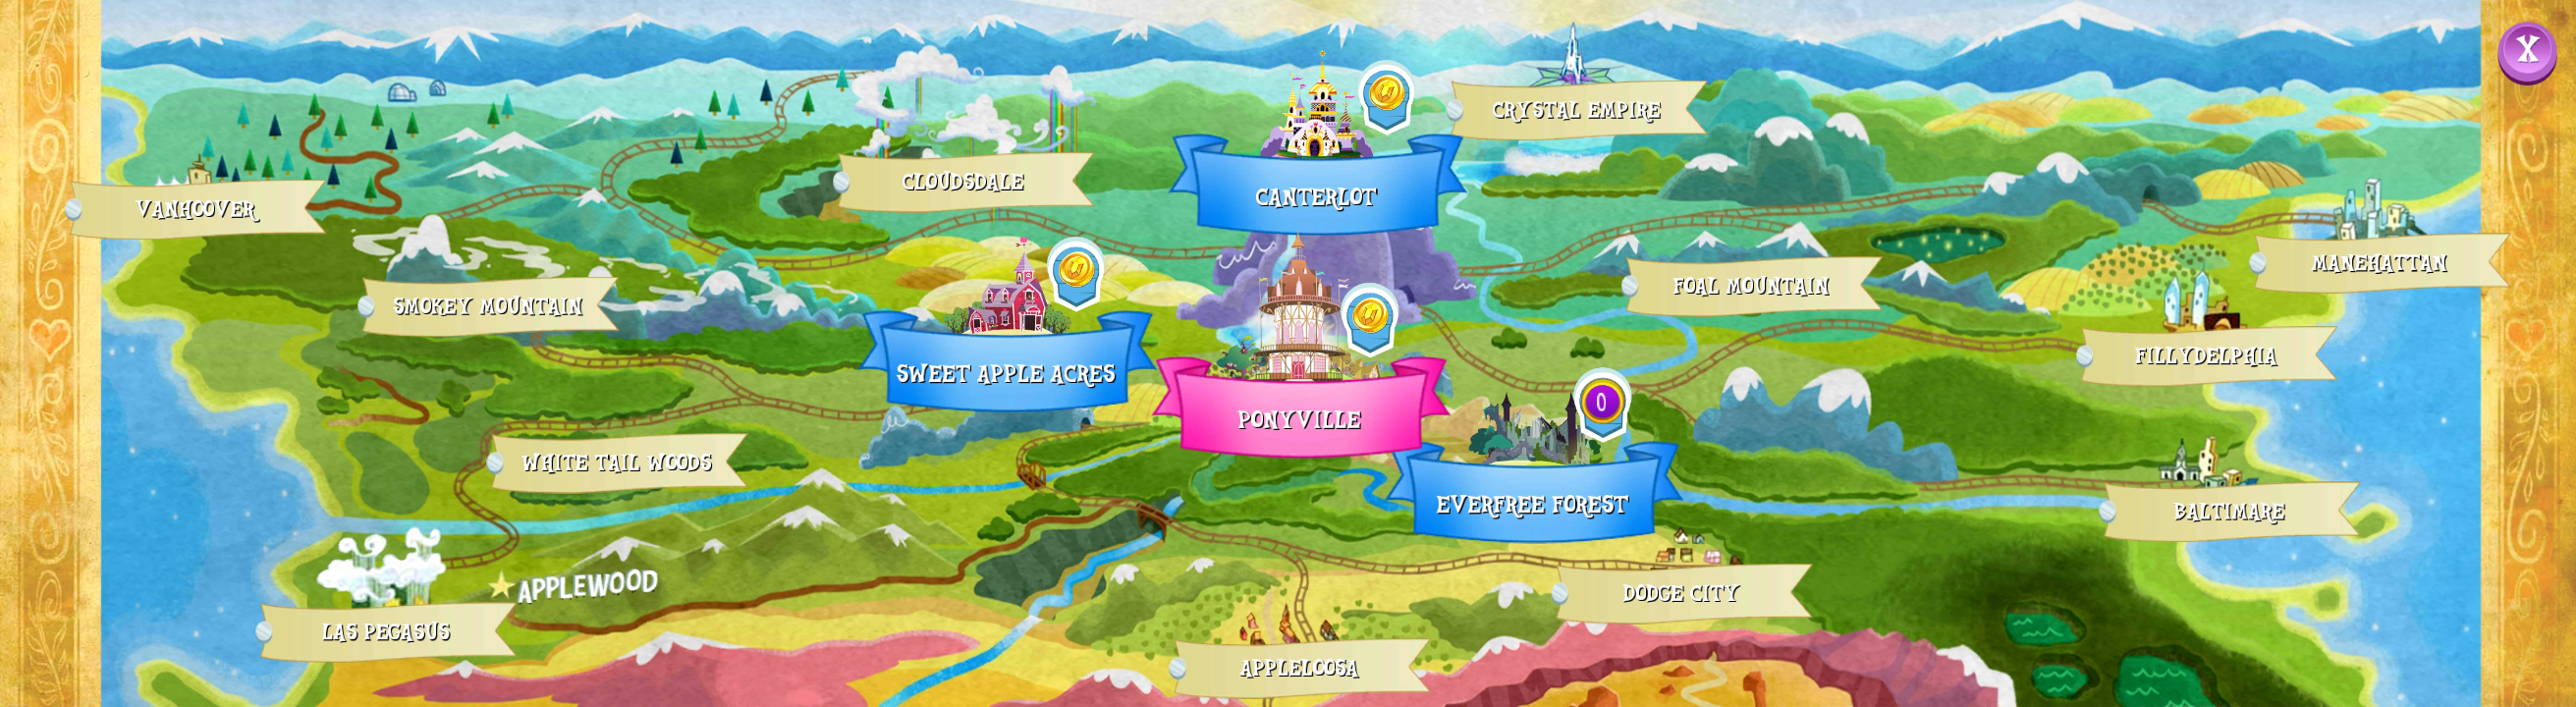 Image map of equestria mobile gameg my little pony map of equestria mobile gameg gumiabroncs Gallery